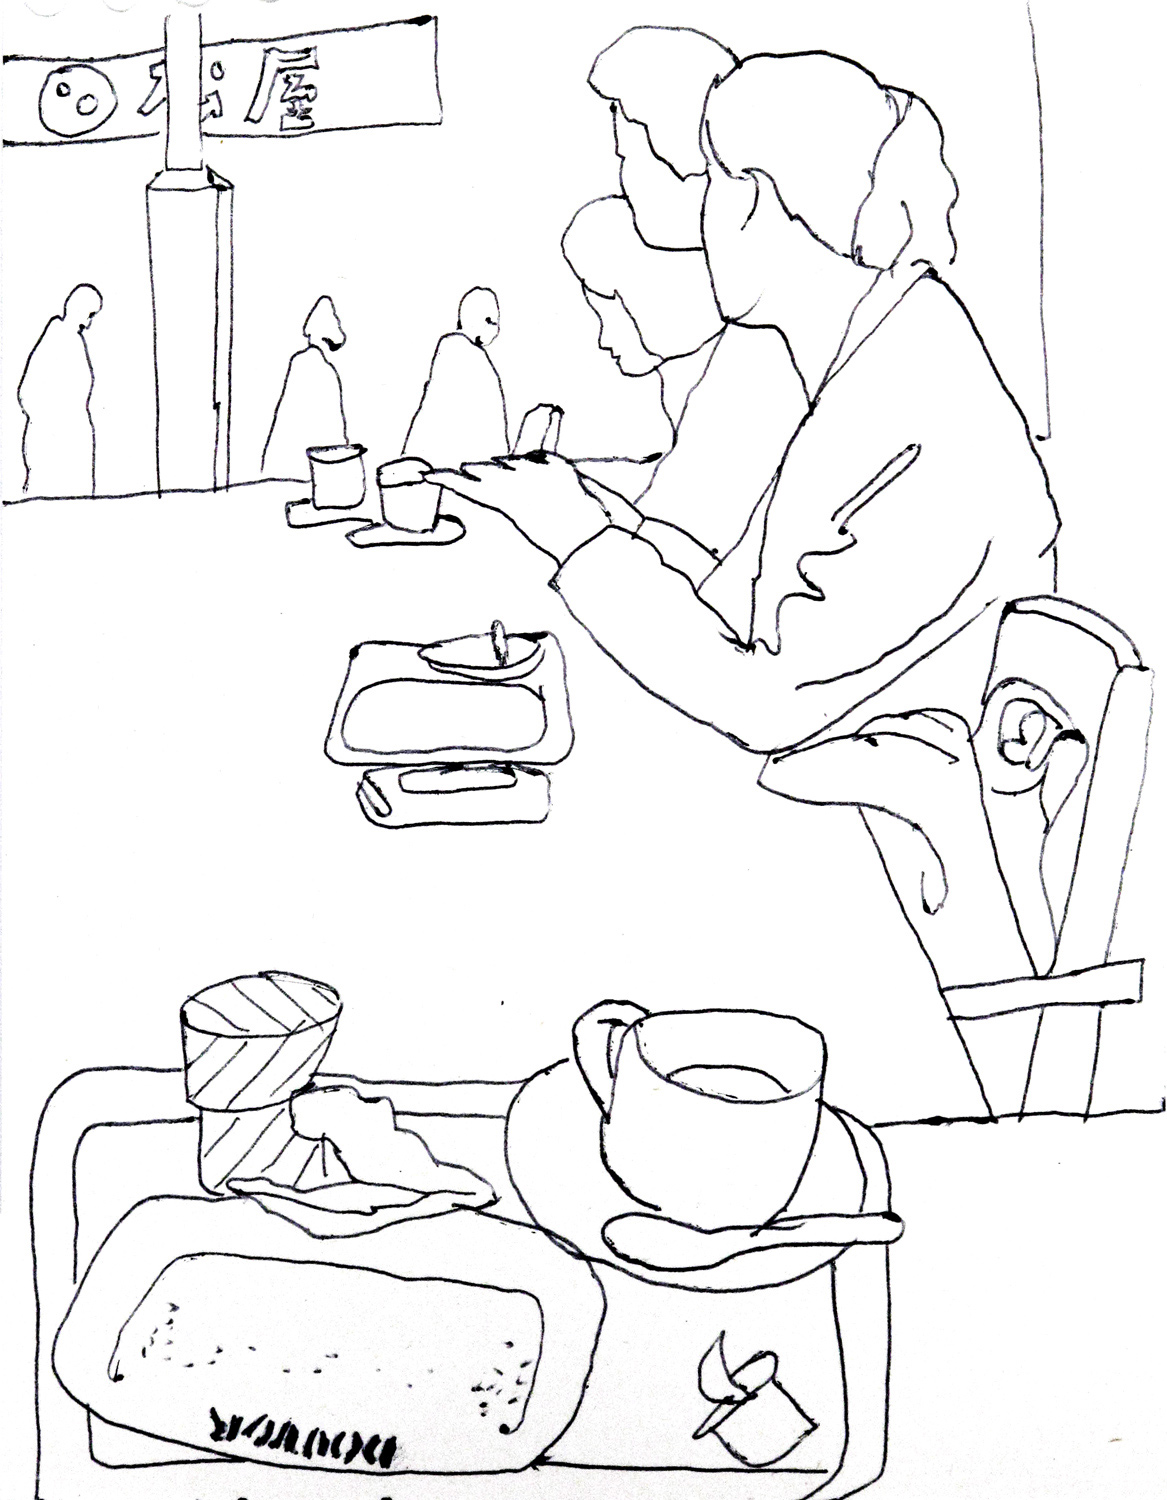 Sketch in a Doutor coffee shop, Tokyo